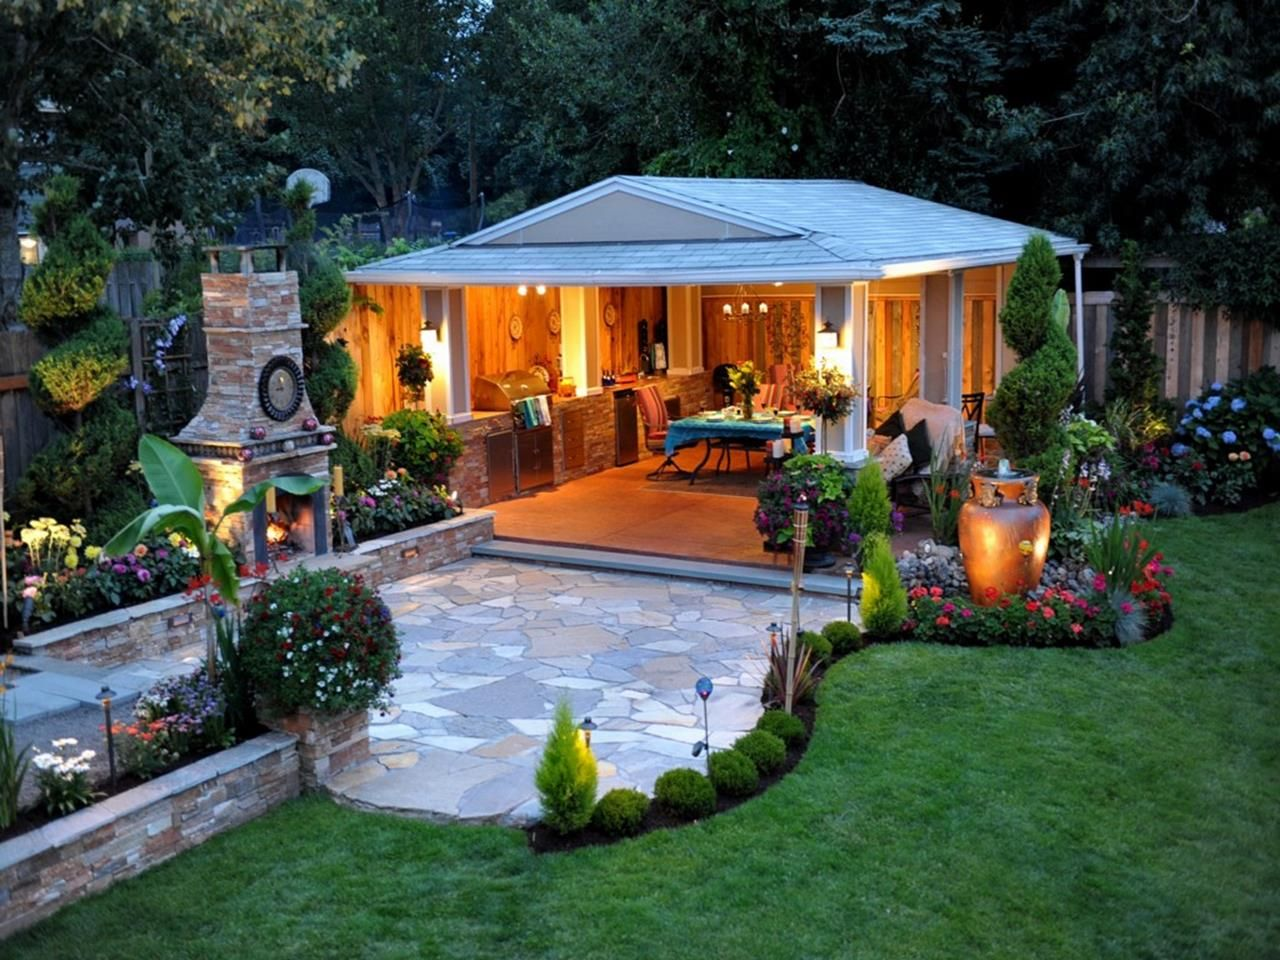 Helpful Landscaping Tips For Creating The Perfect Yard Craft And Home Ideas In 2020 Diy Backyard Patio Small Backyard Landscaping Patio Landscape Design